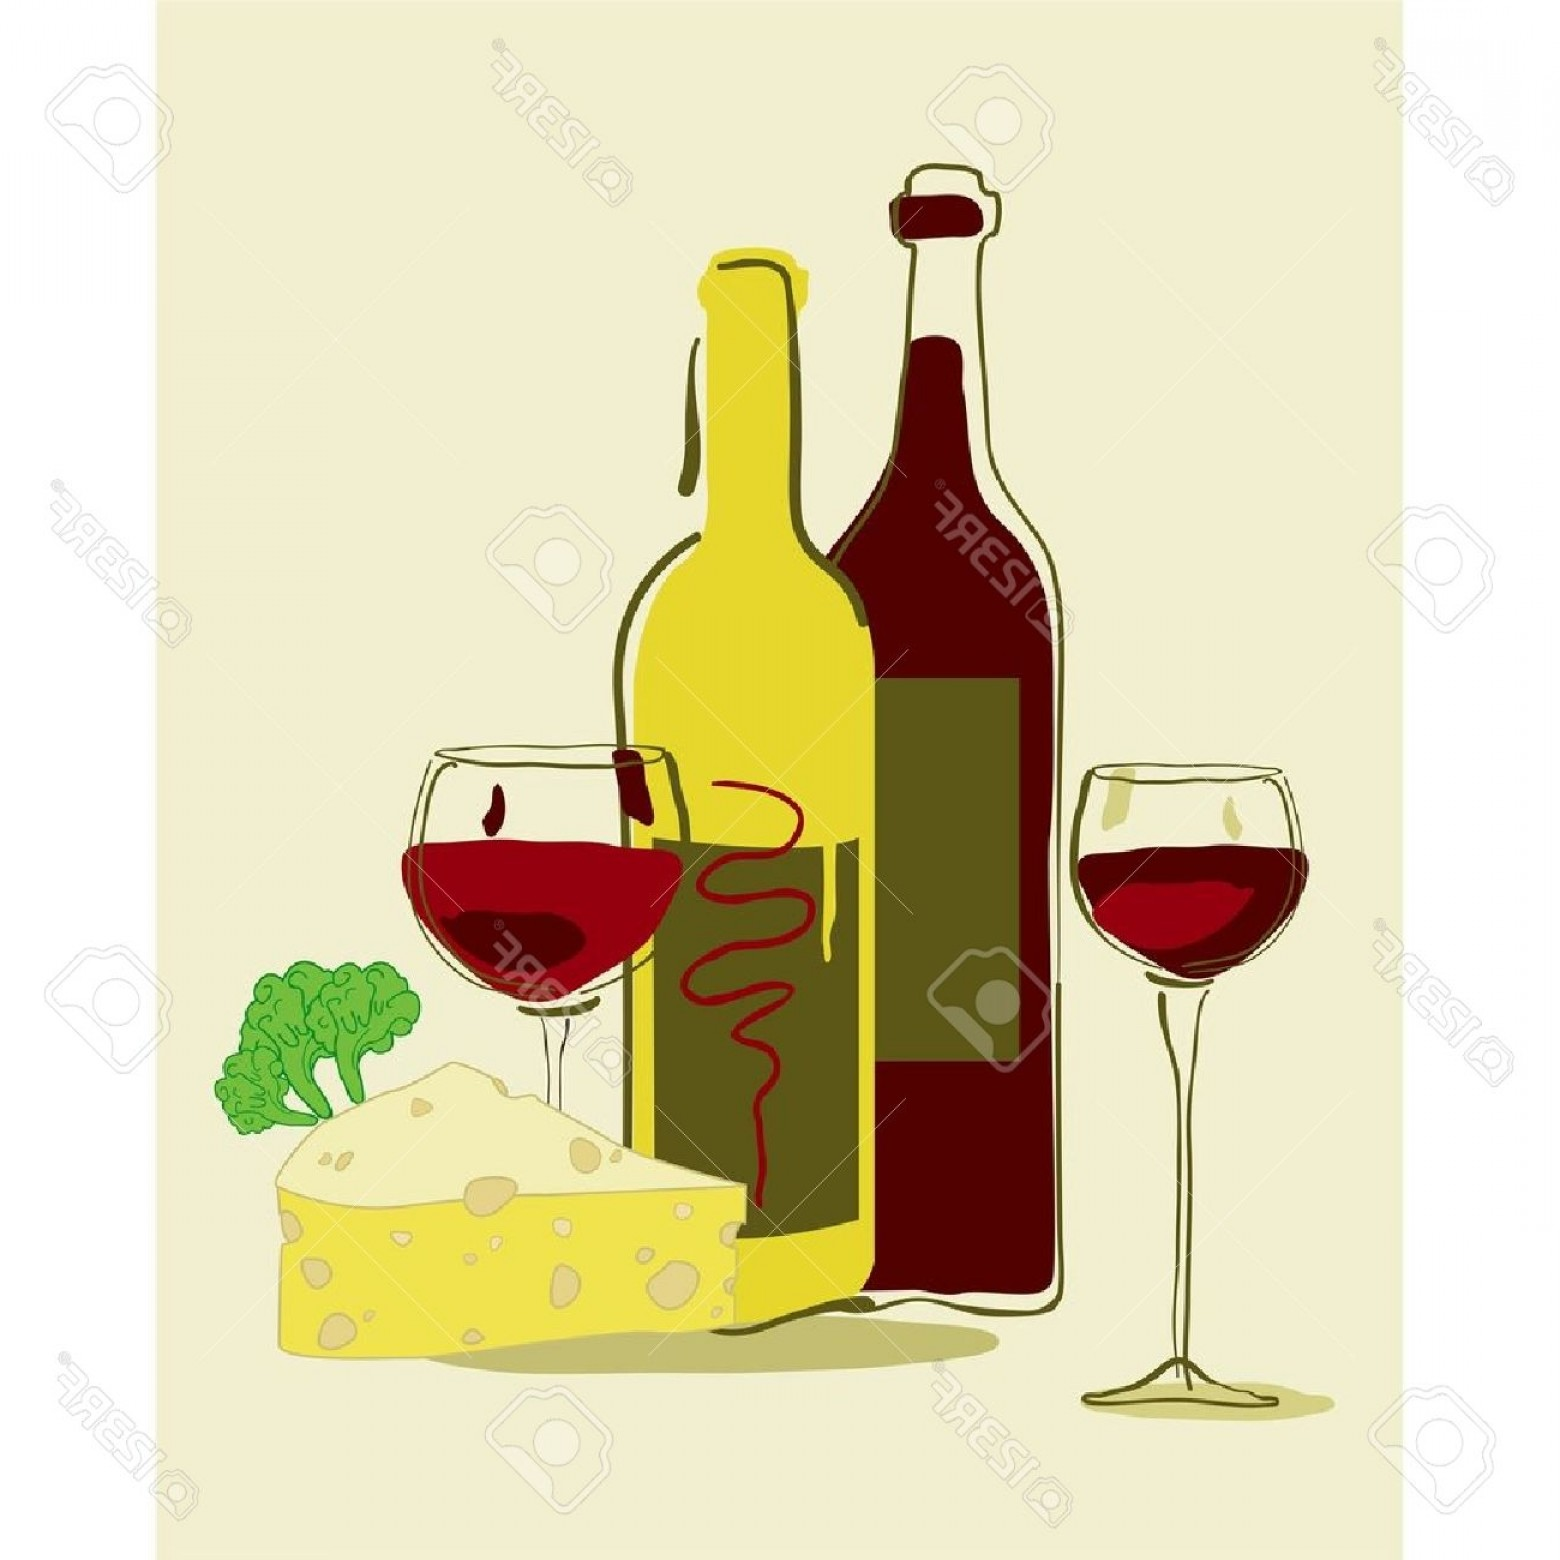 Free clipart wine and cheese on table clipart transparent download Free Wine Party Cliparts, Download Free Clip Art, Free Clip Art on ... clipart transparent download